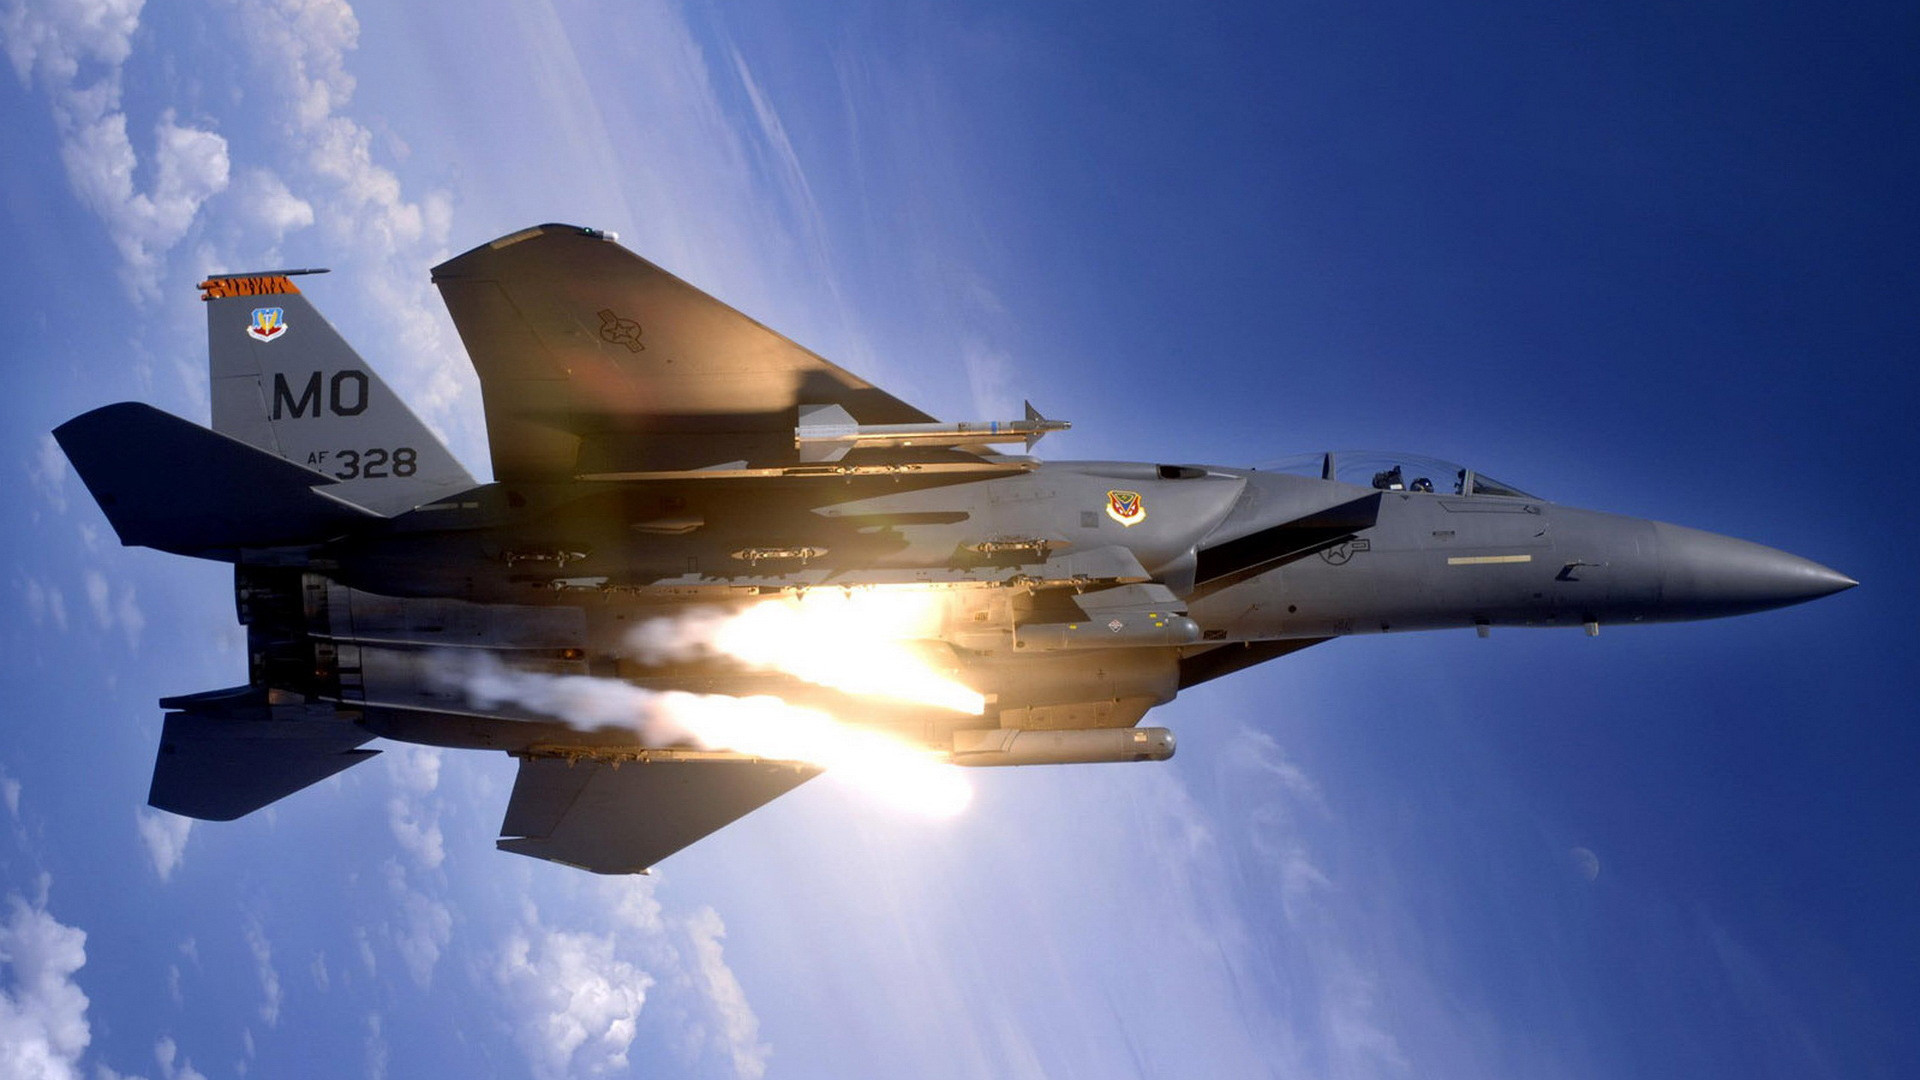 1920x1080 f15 eagle jet  hd wallpaper aircraft jet fighter